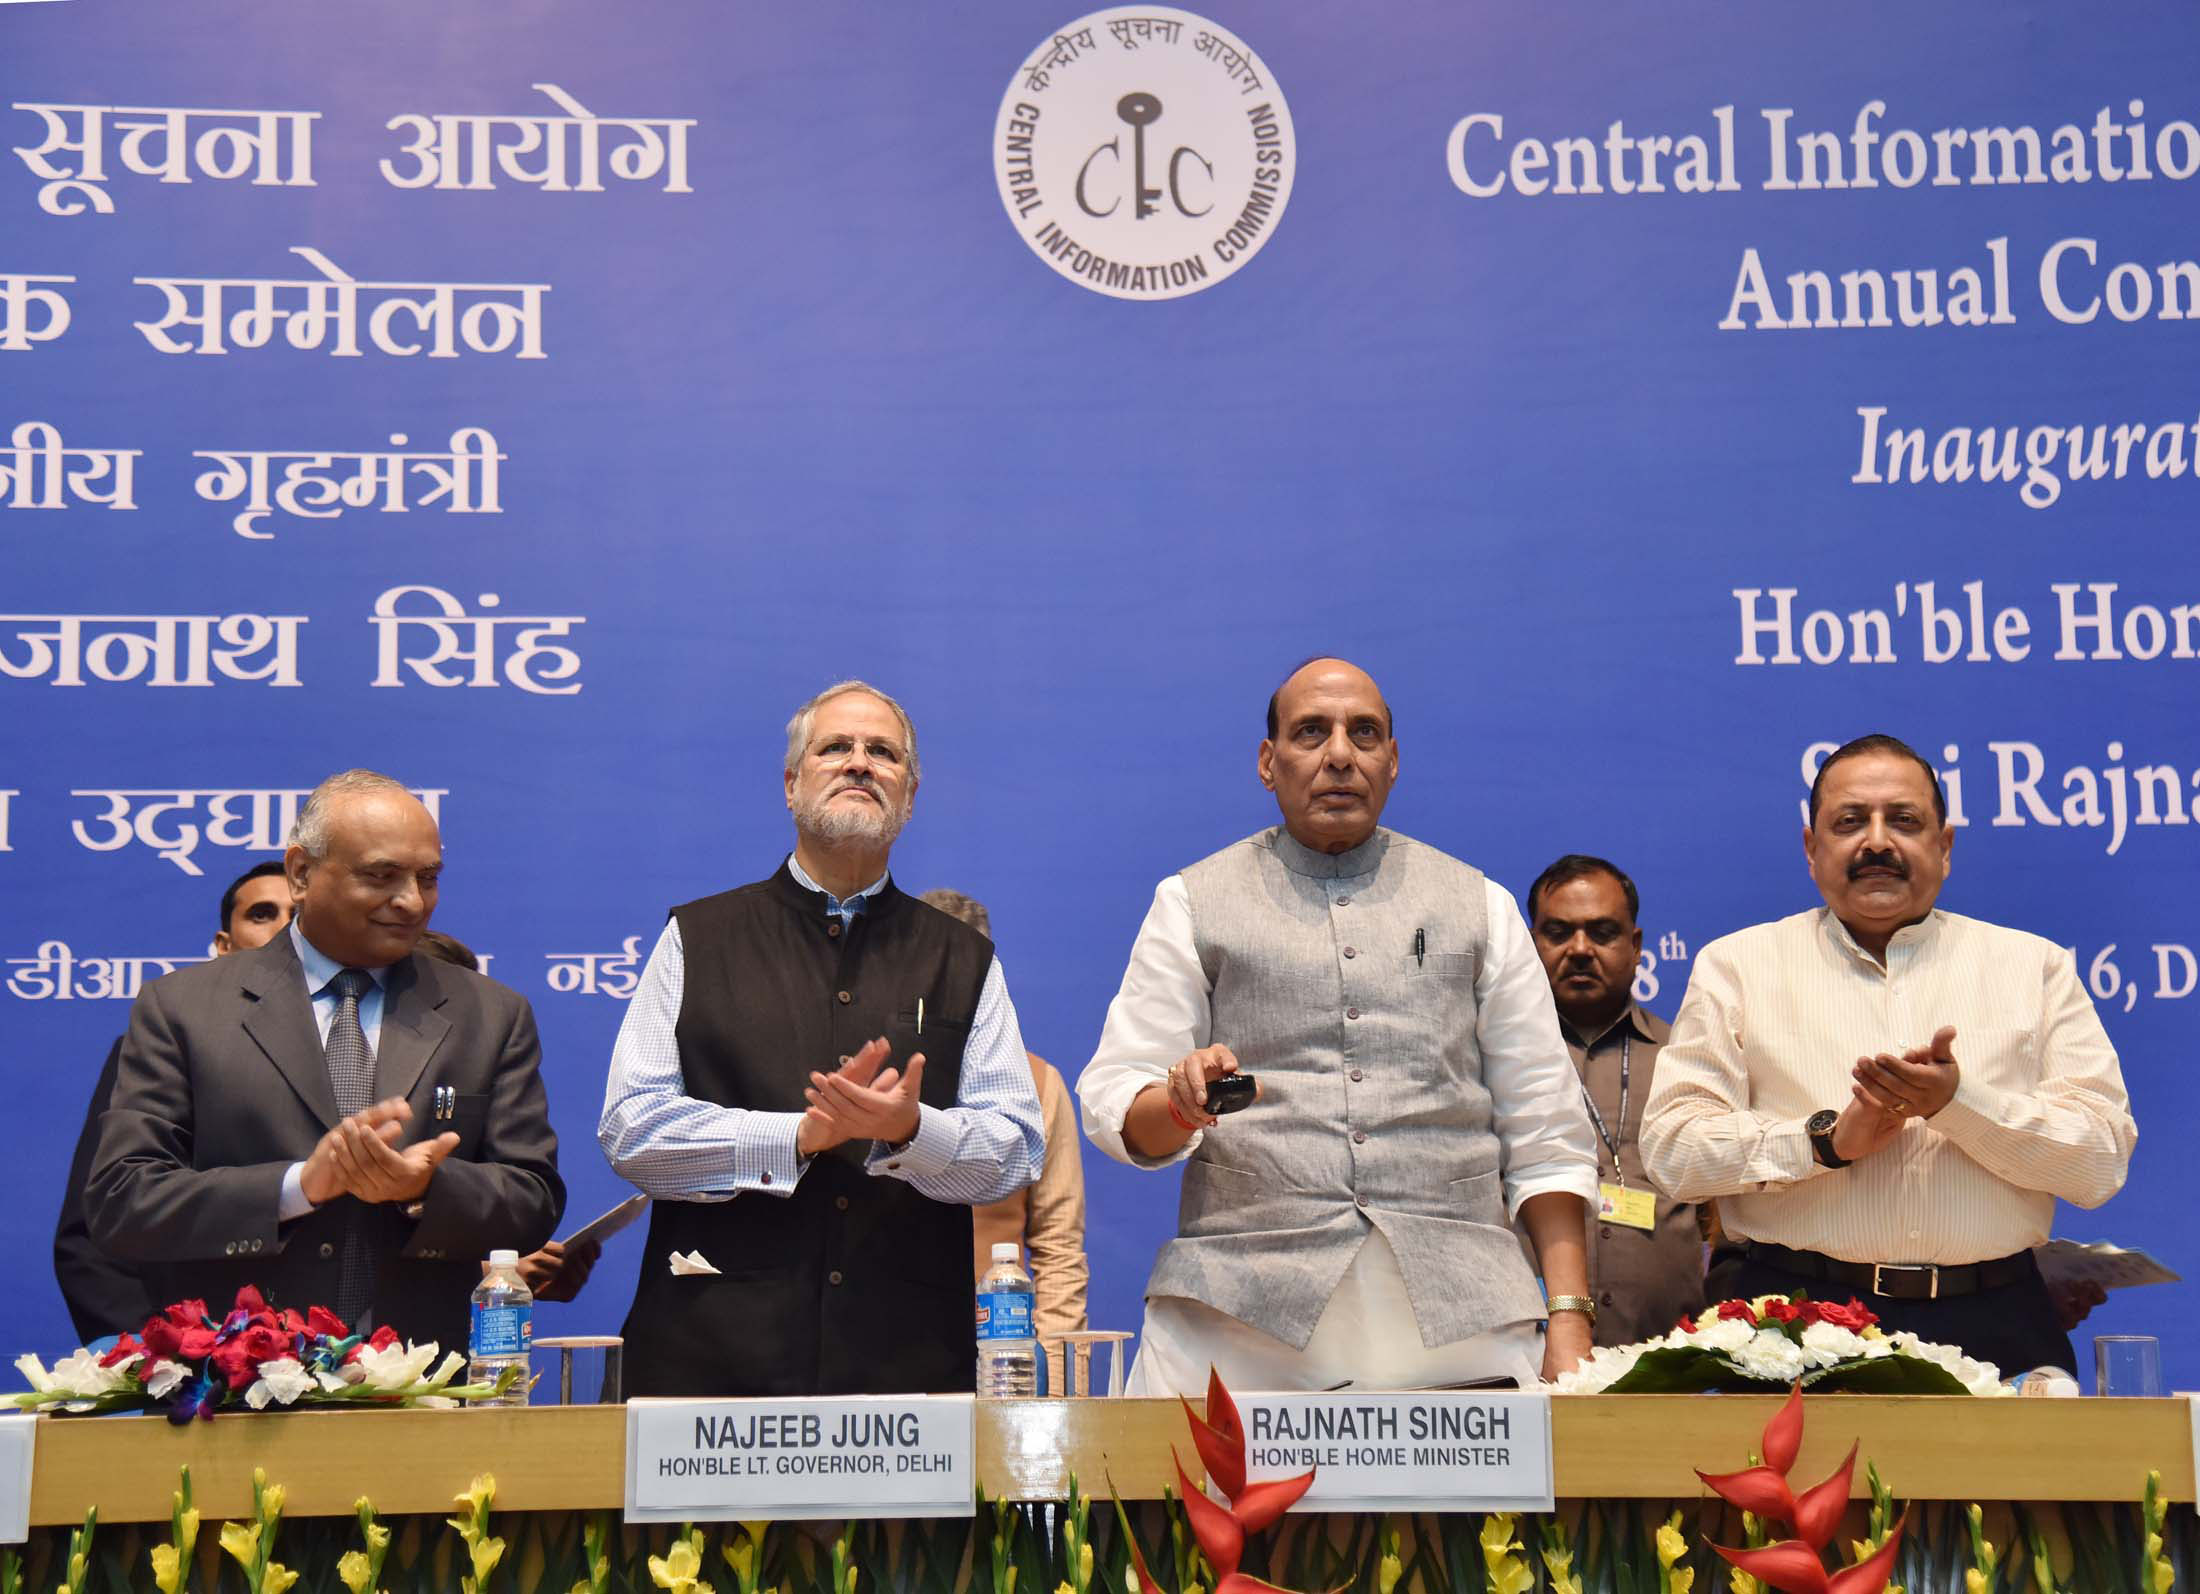 The Union Home Minister, Shri Rajnath Singh at the inauguration of the 11th Annual Convention of Central Information Commission (CIC), in New Delhi on November 07, 2016. 	The Lt. Governor of Delhi, Shri Najeeb Jung, the Minister of State for Development of North Eastern Region (I/C), Prime Minister's Office, Personnel, Public Grievances & Pensions, Atomic Energy and Space, Dr. Jitendra Singh and the Chief Information Commissioner, Shri R.K. Mathur are also seen.